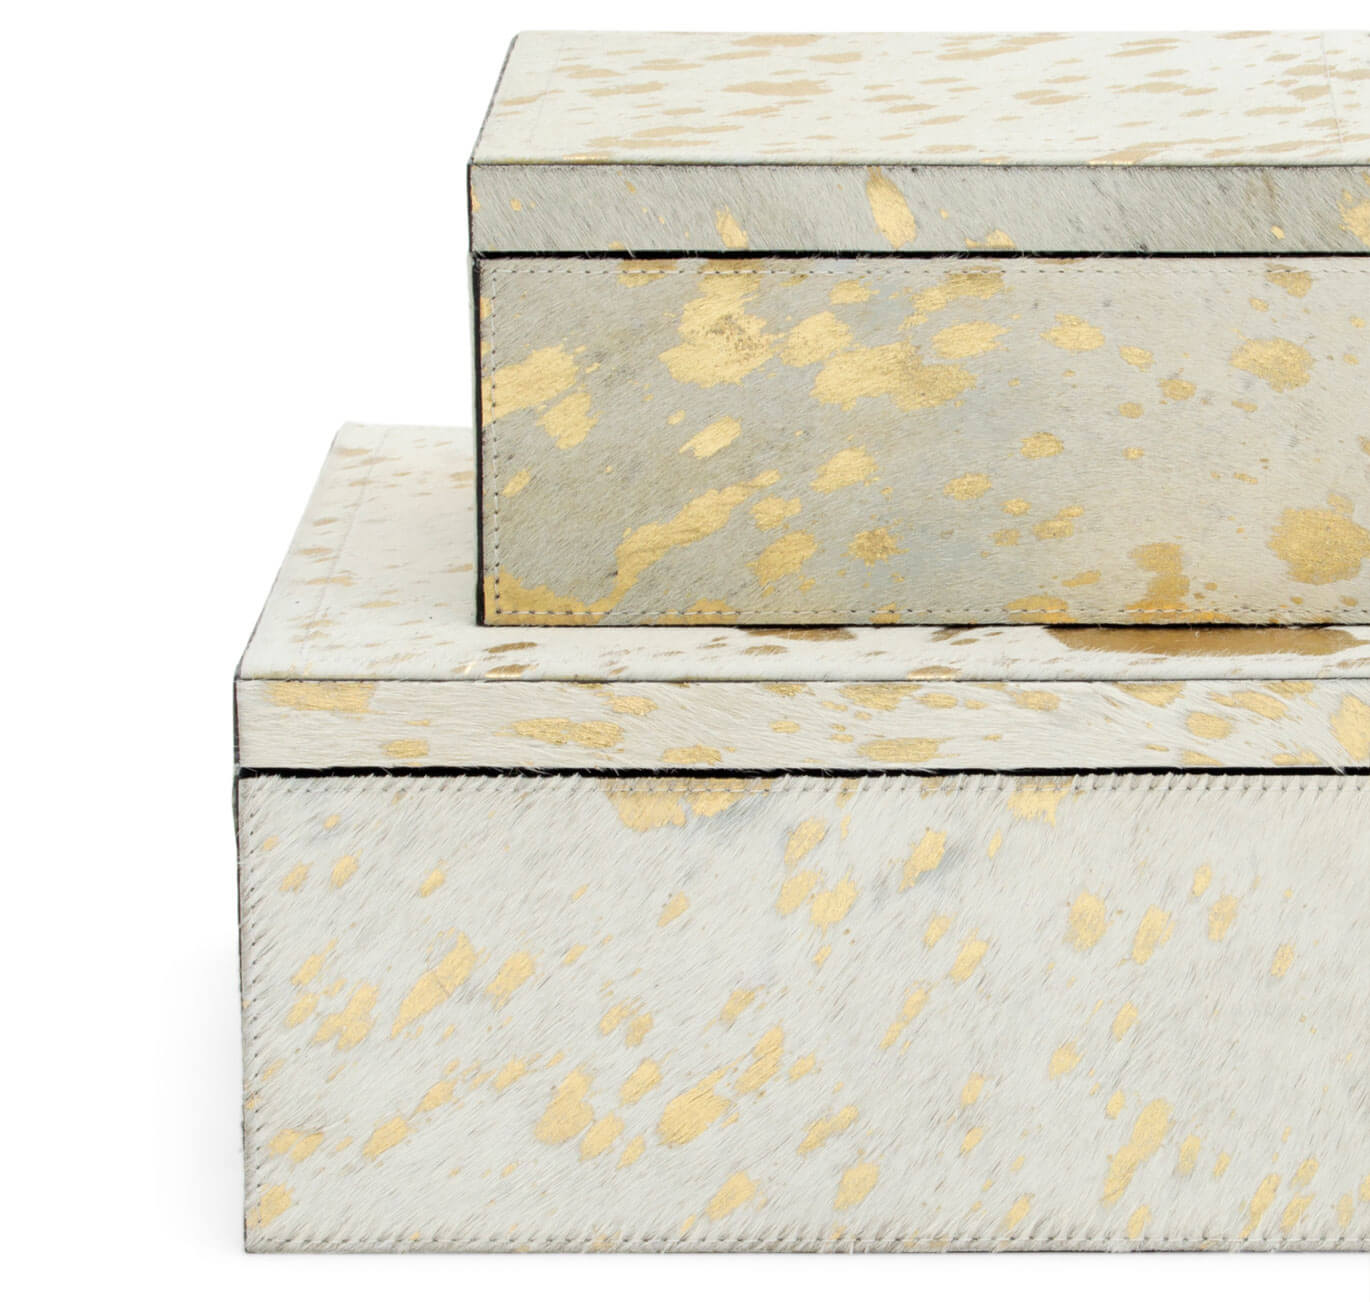 Gold on White Hide Boxes Side View